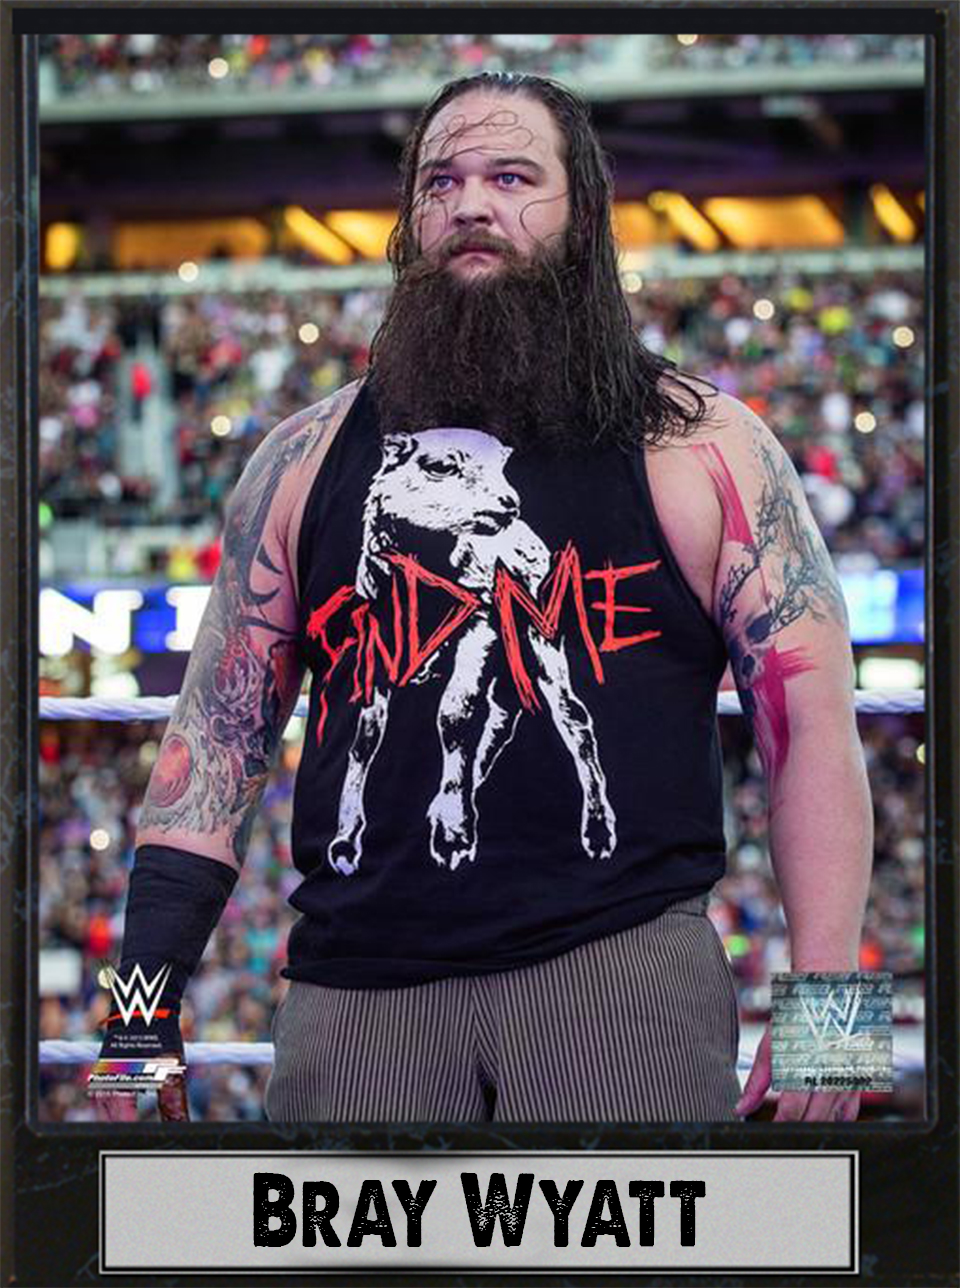 9x12 Photo Plaque Bray Wyatt by Encore Select